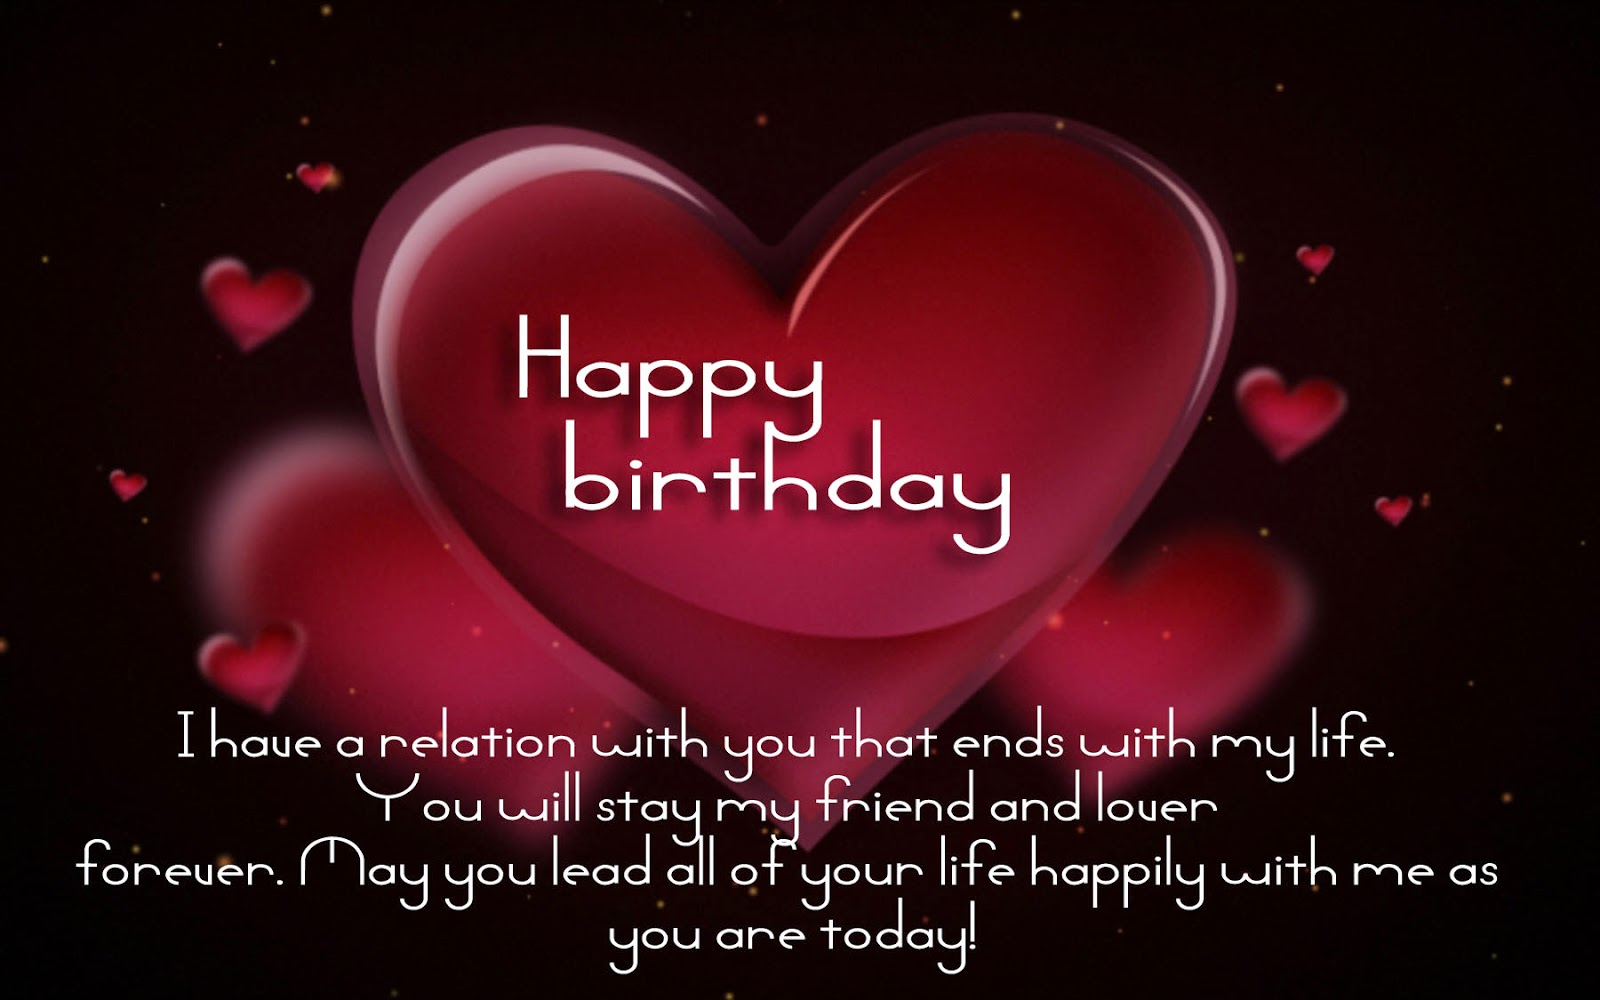 Free Birthday Quotes And Images ~ The best collection of romantic birthday wishes for boyfriend